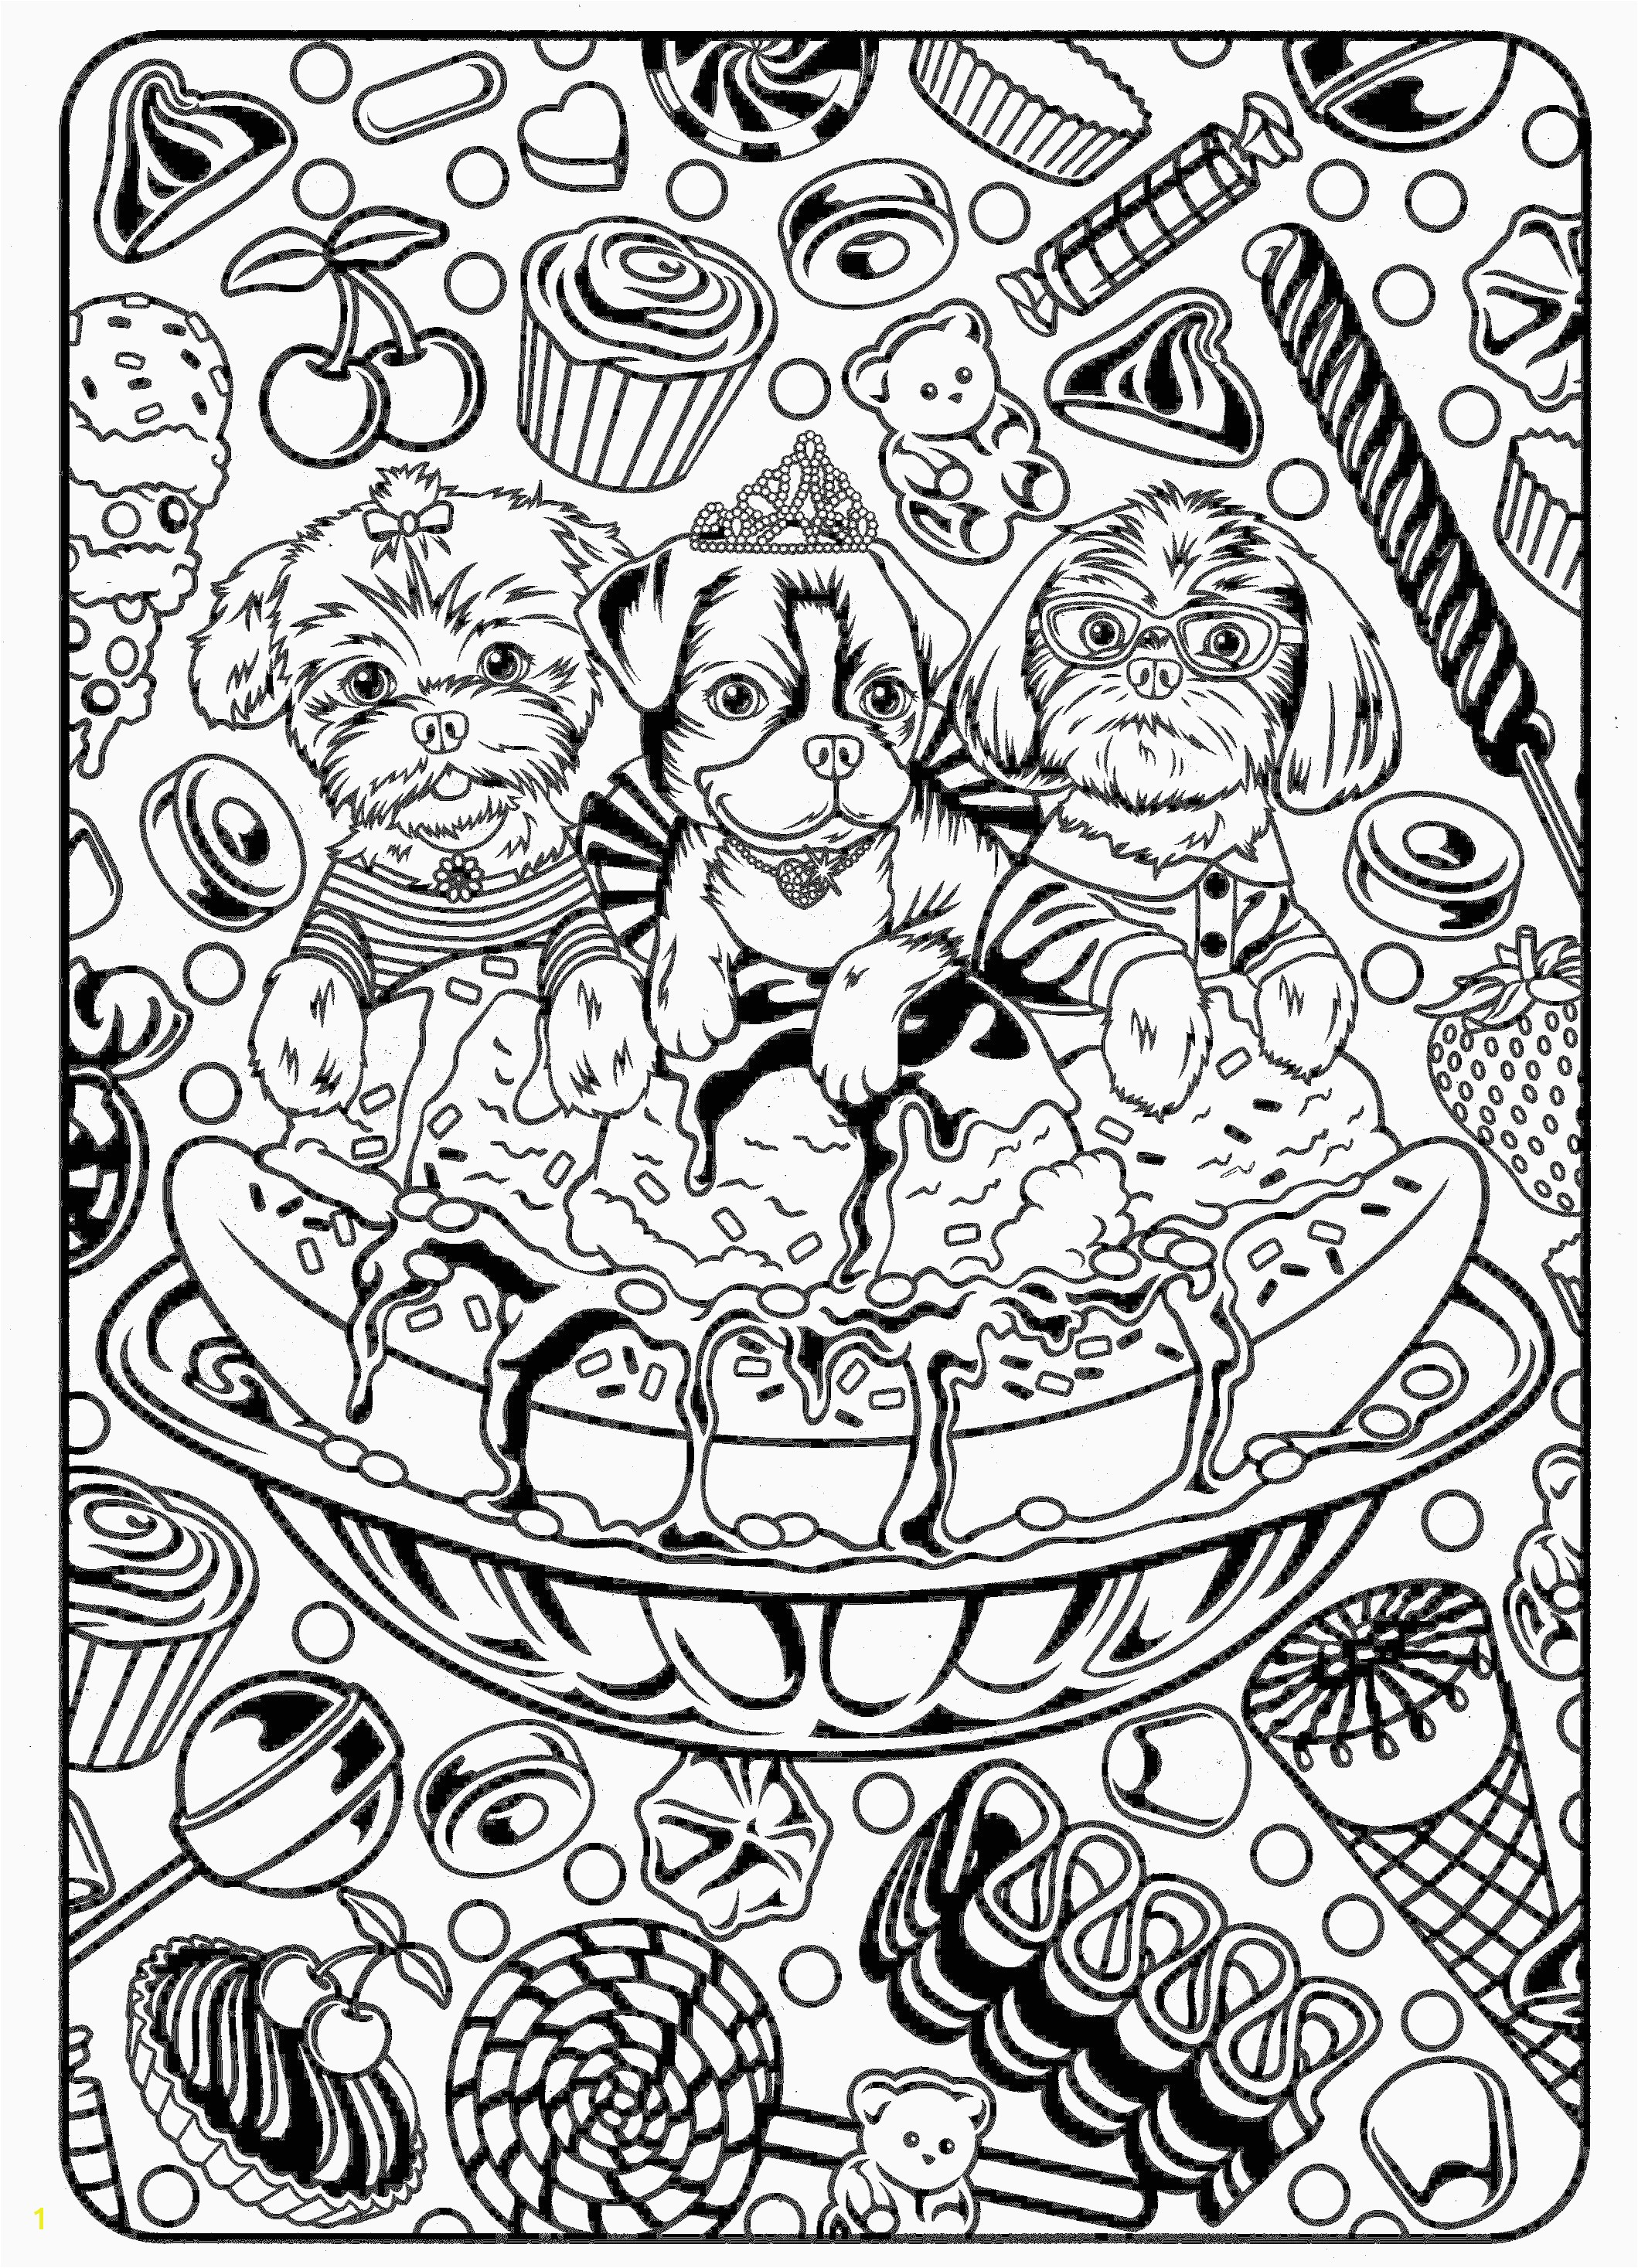 Free Psychedelic Coloring Pages for Adults High Resolution Coloring Book Unique Mandala Coloring Pages